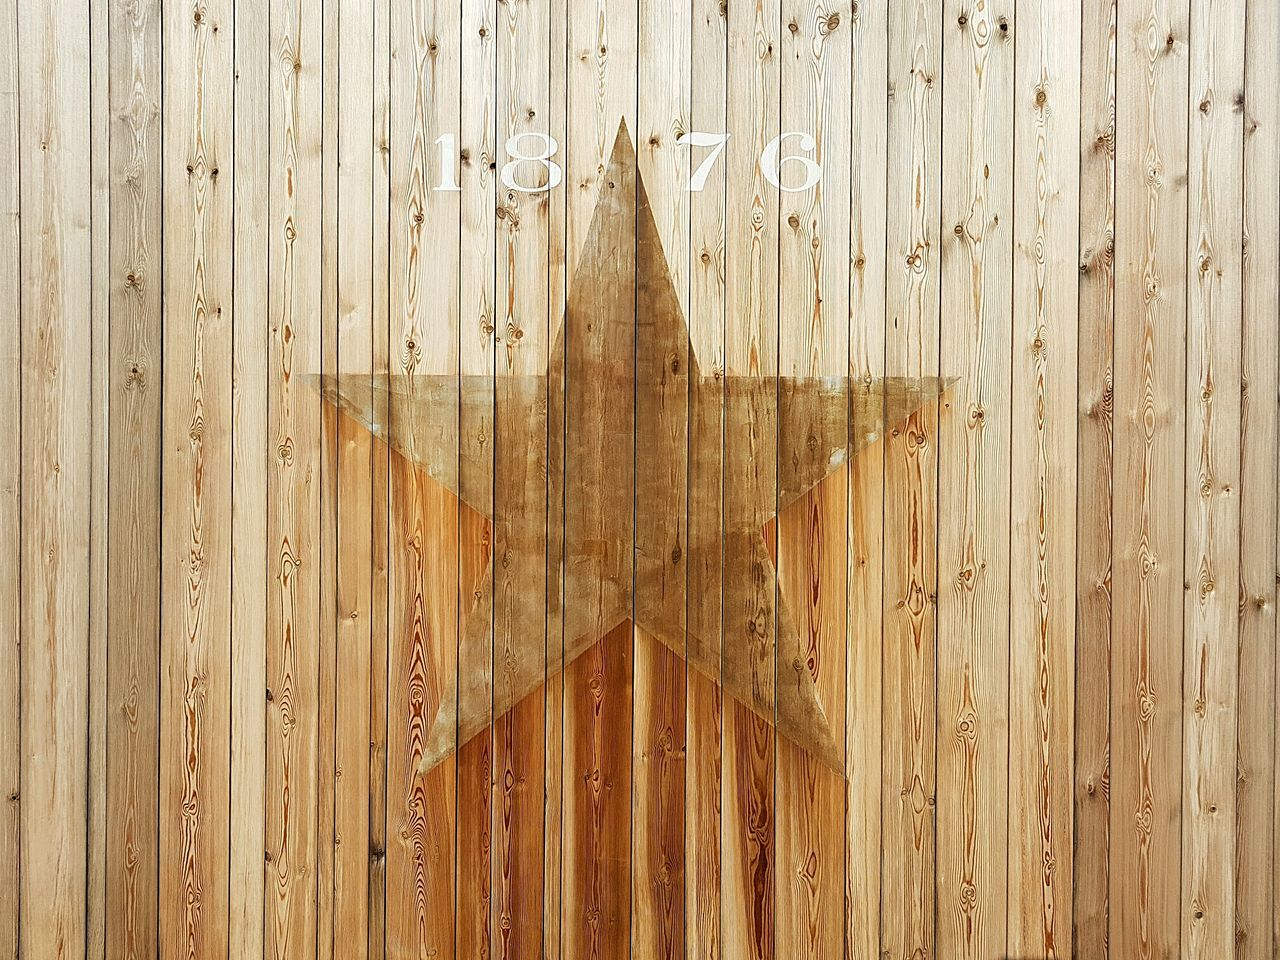 Wood - Material Backgrounds Wood Grain Full Frame No People Outdoors Day Wood Paneling Close-up Estrella Beer Barcelona Olympic camp star